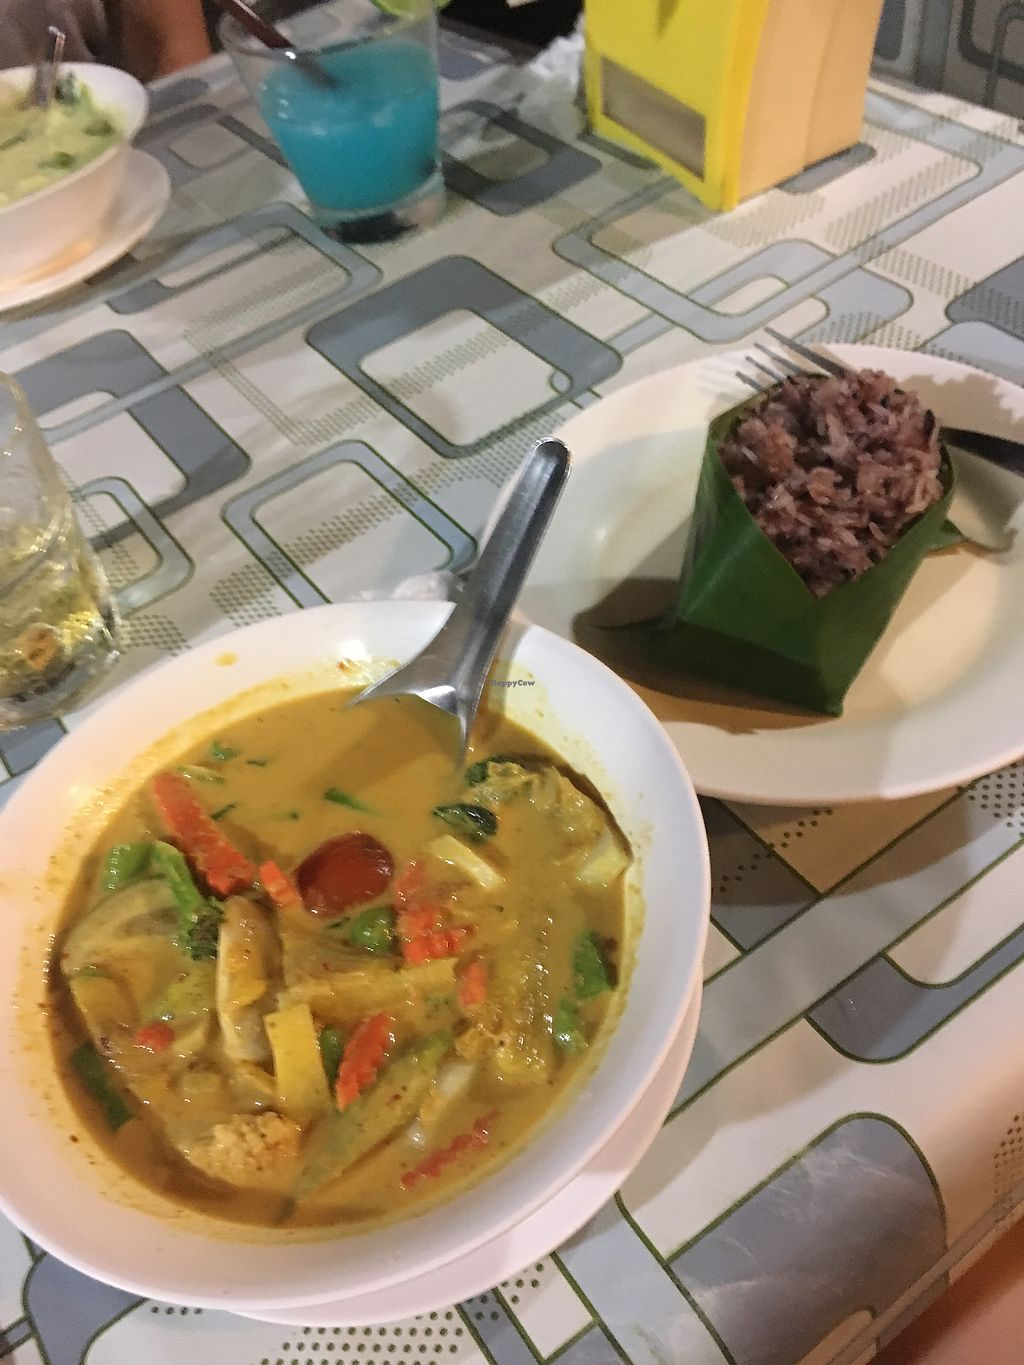 "Photo of Ton Ma Yom  by <a href=""/members/profile/Fran%C3%A7oiseFacella"">FrançoiseFacella</a> <br/>Vegetable red curry and sticky rice  <br/> November 26, 2017  - <a href='/contact/abuse/image/105910/329363'>Report</a>"